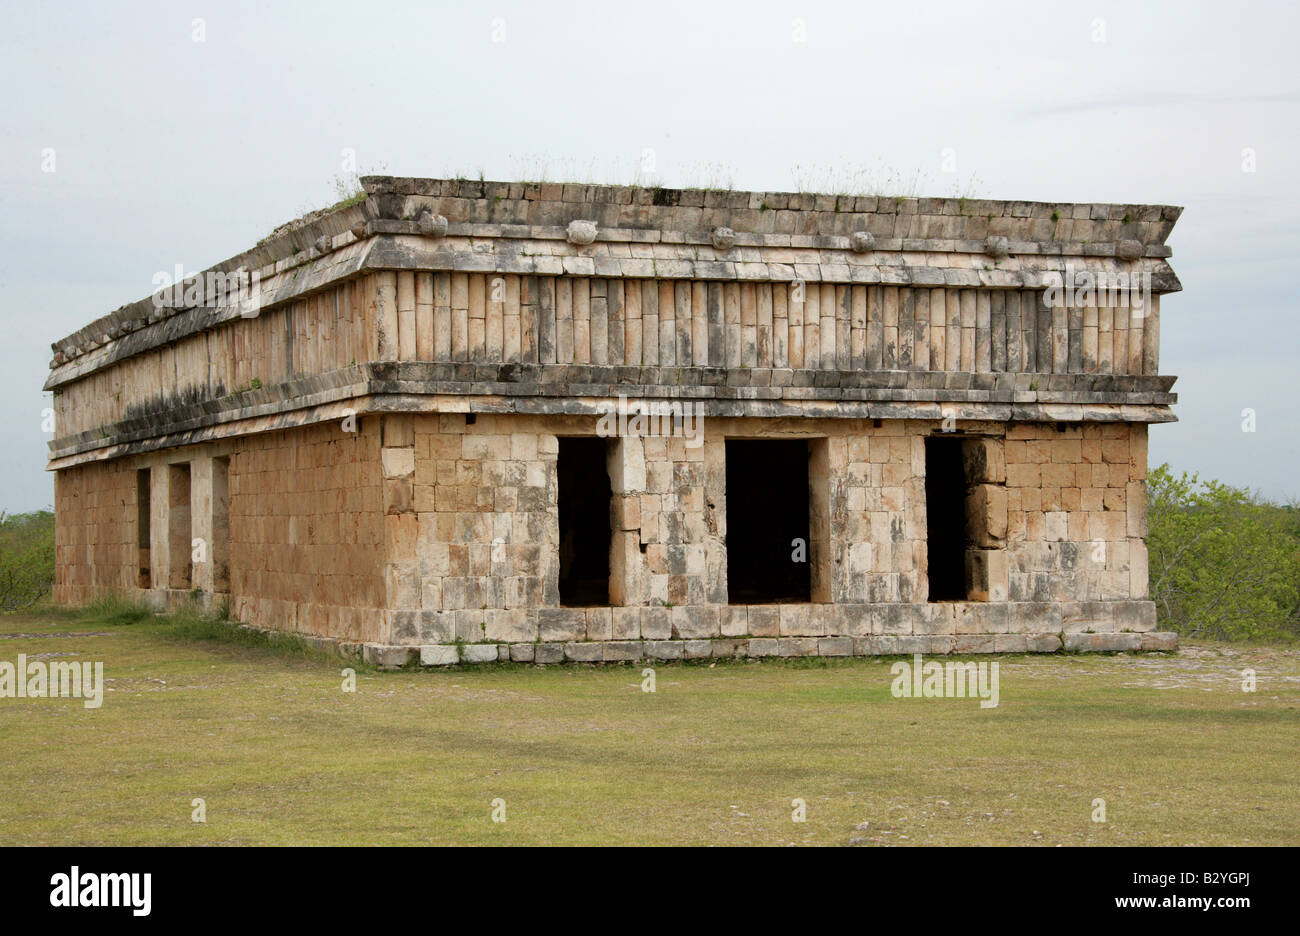 House of the Turtles, Uxmal Archaeological Site, Uxmal, Yucatan State, Mexico Stock Photo